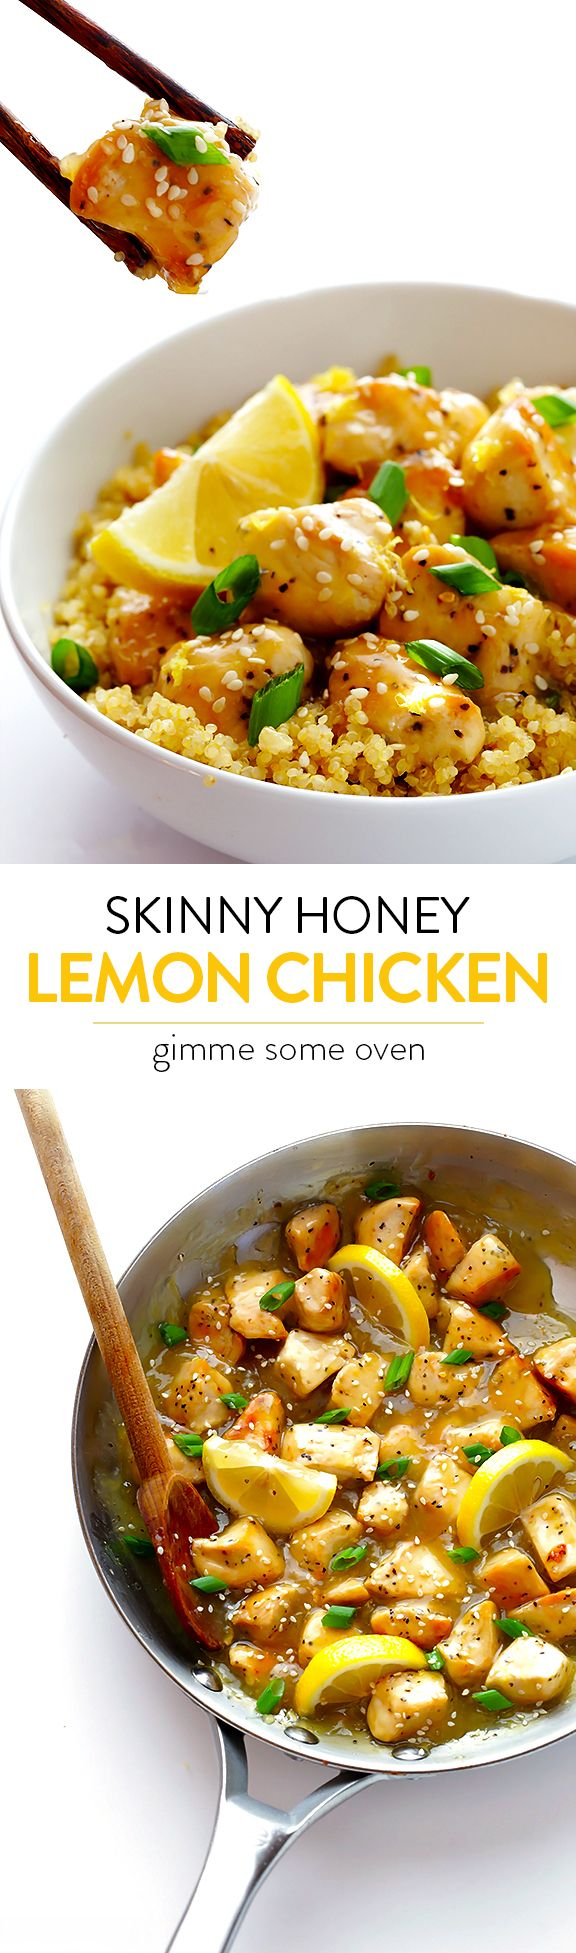 This Skinny Honey Lemon Chicken recipe is quick and easy to make, full of…